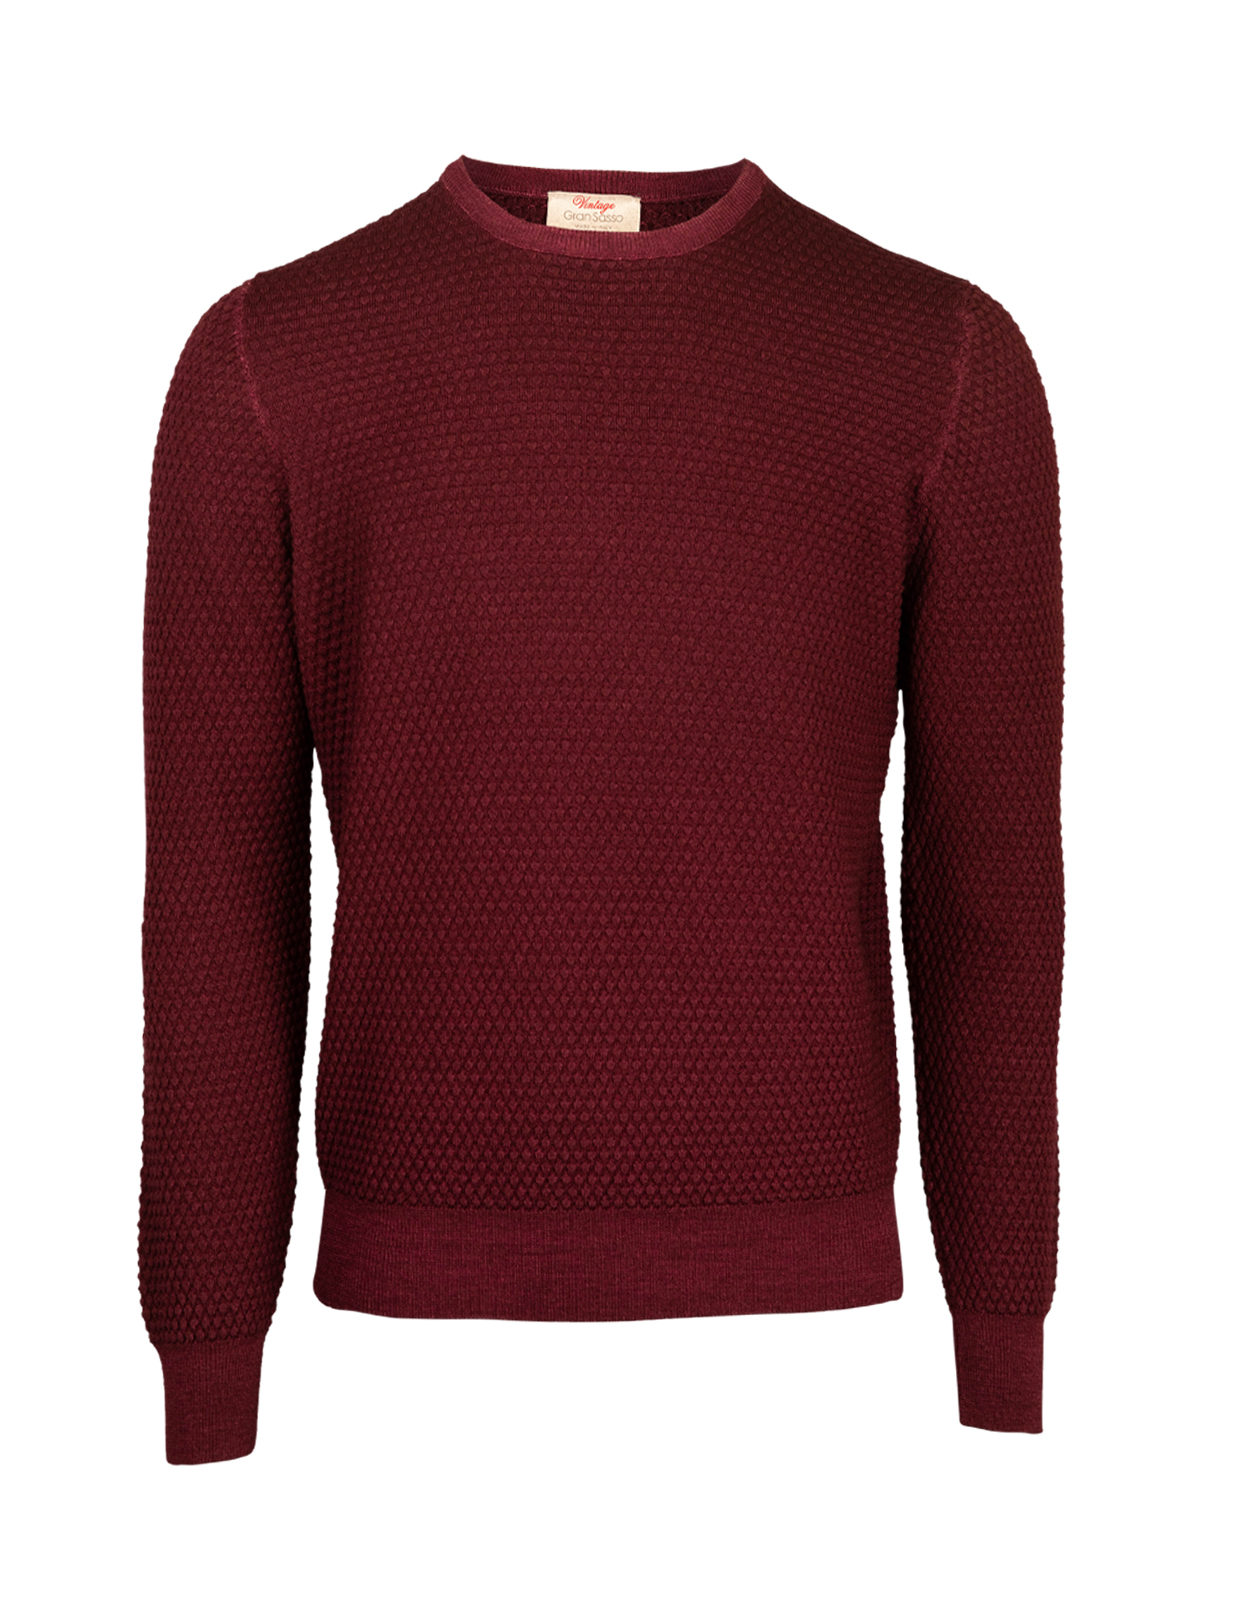 Knitted Texture Vintage Merino Crew Neck Bordeaux